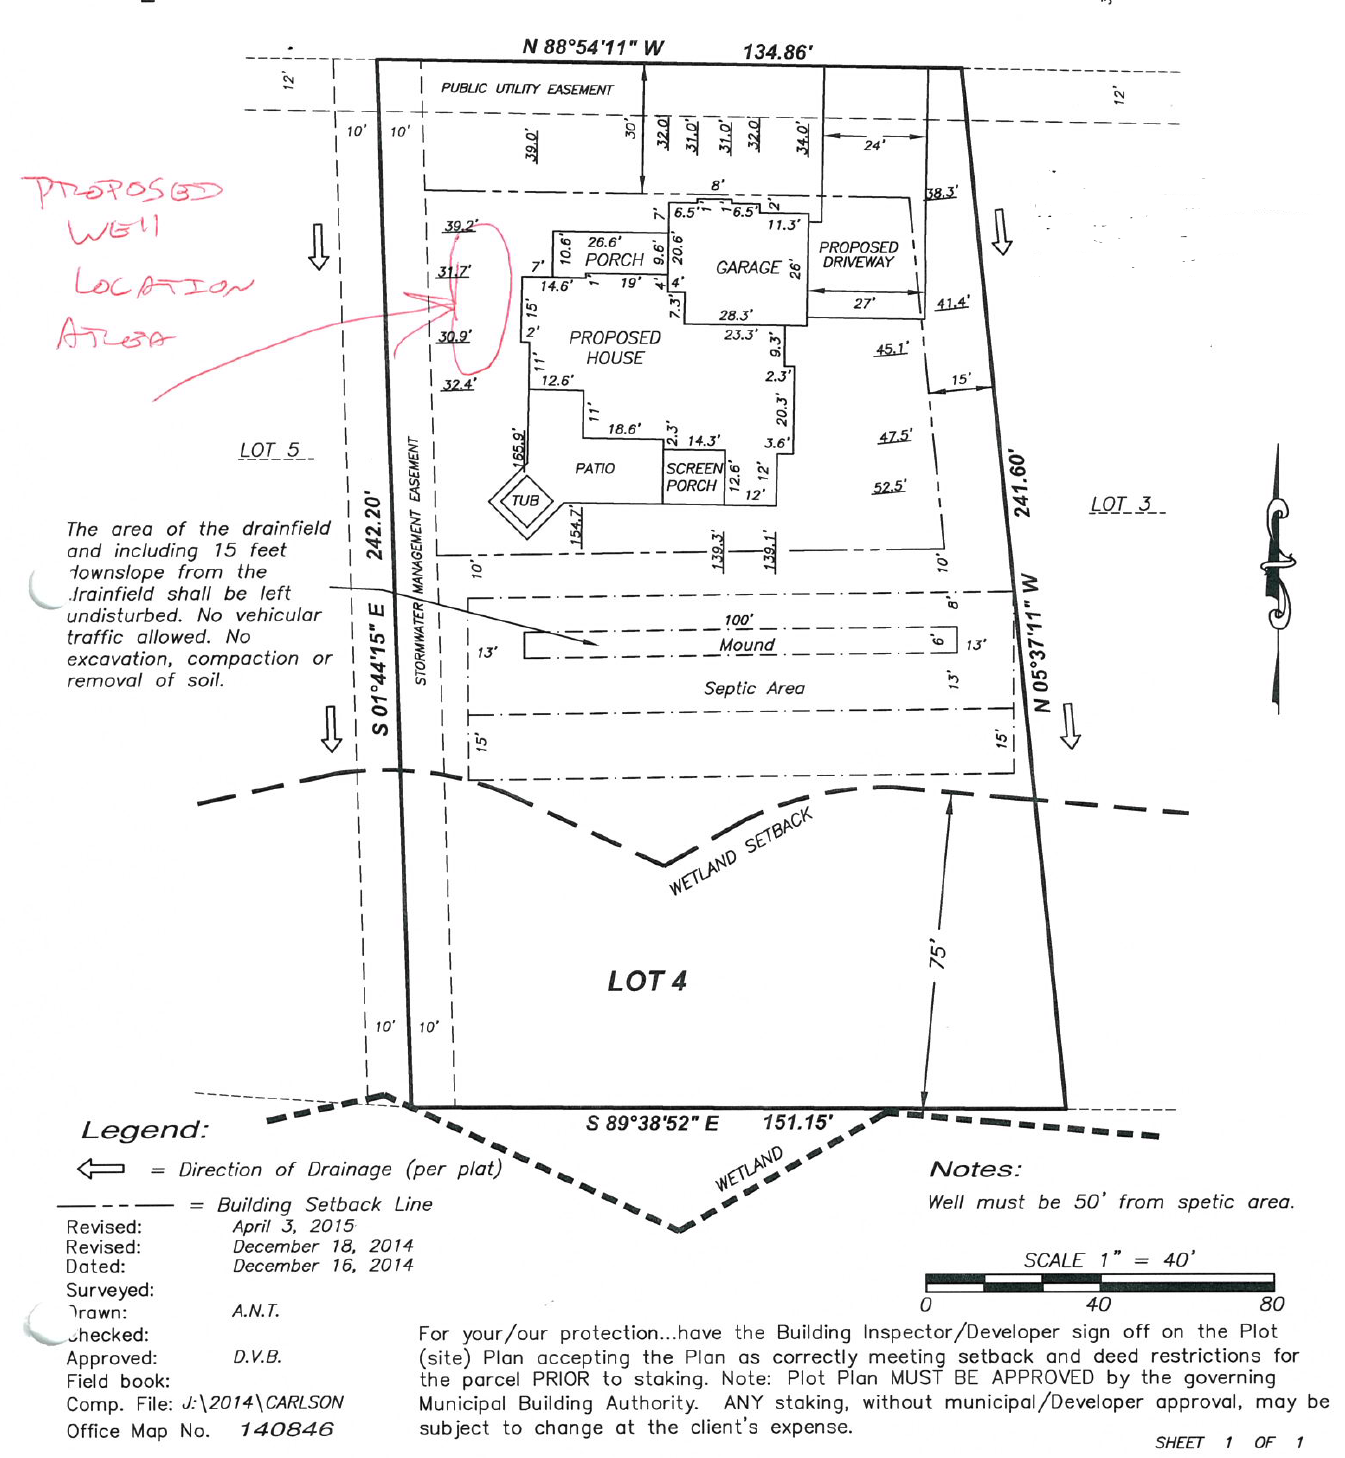 New Home Site Plan - This new home site plan, completed by a licensed surveyor, shows critical markings such as wetland setbacks, septic and mound system drain fields, and the exact location of the house. Note that the exact well location need not be officially notated and has been drawn in by hand in this site plan.